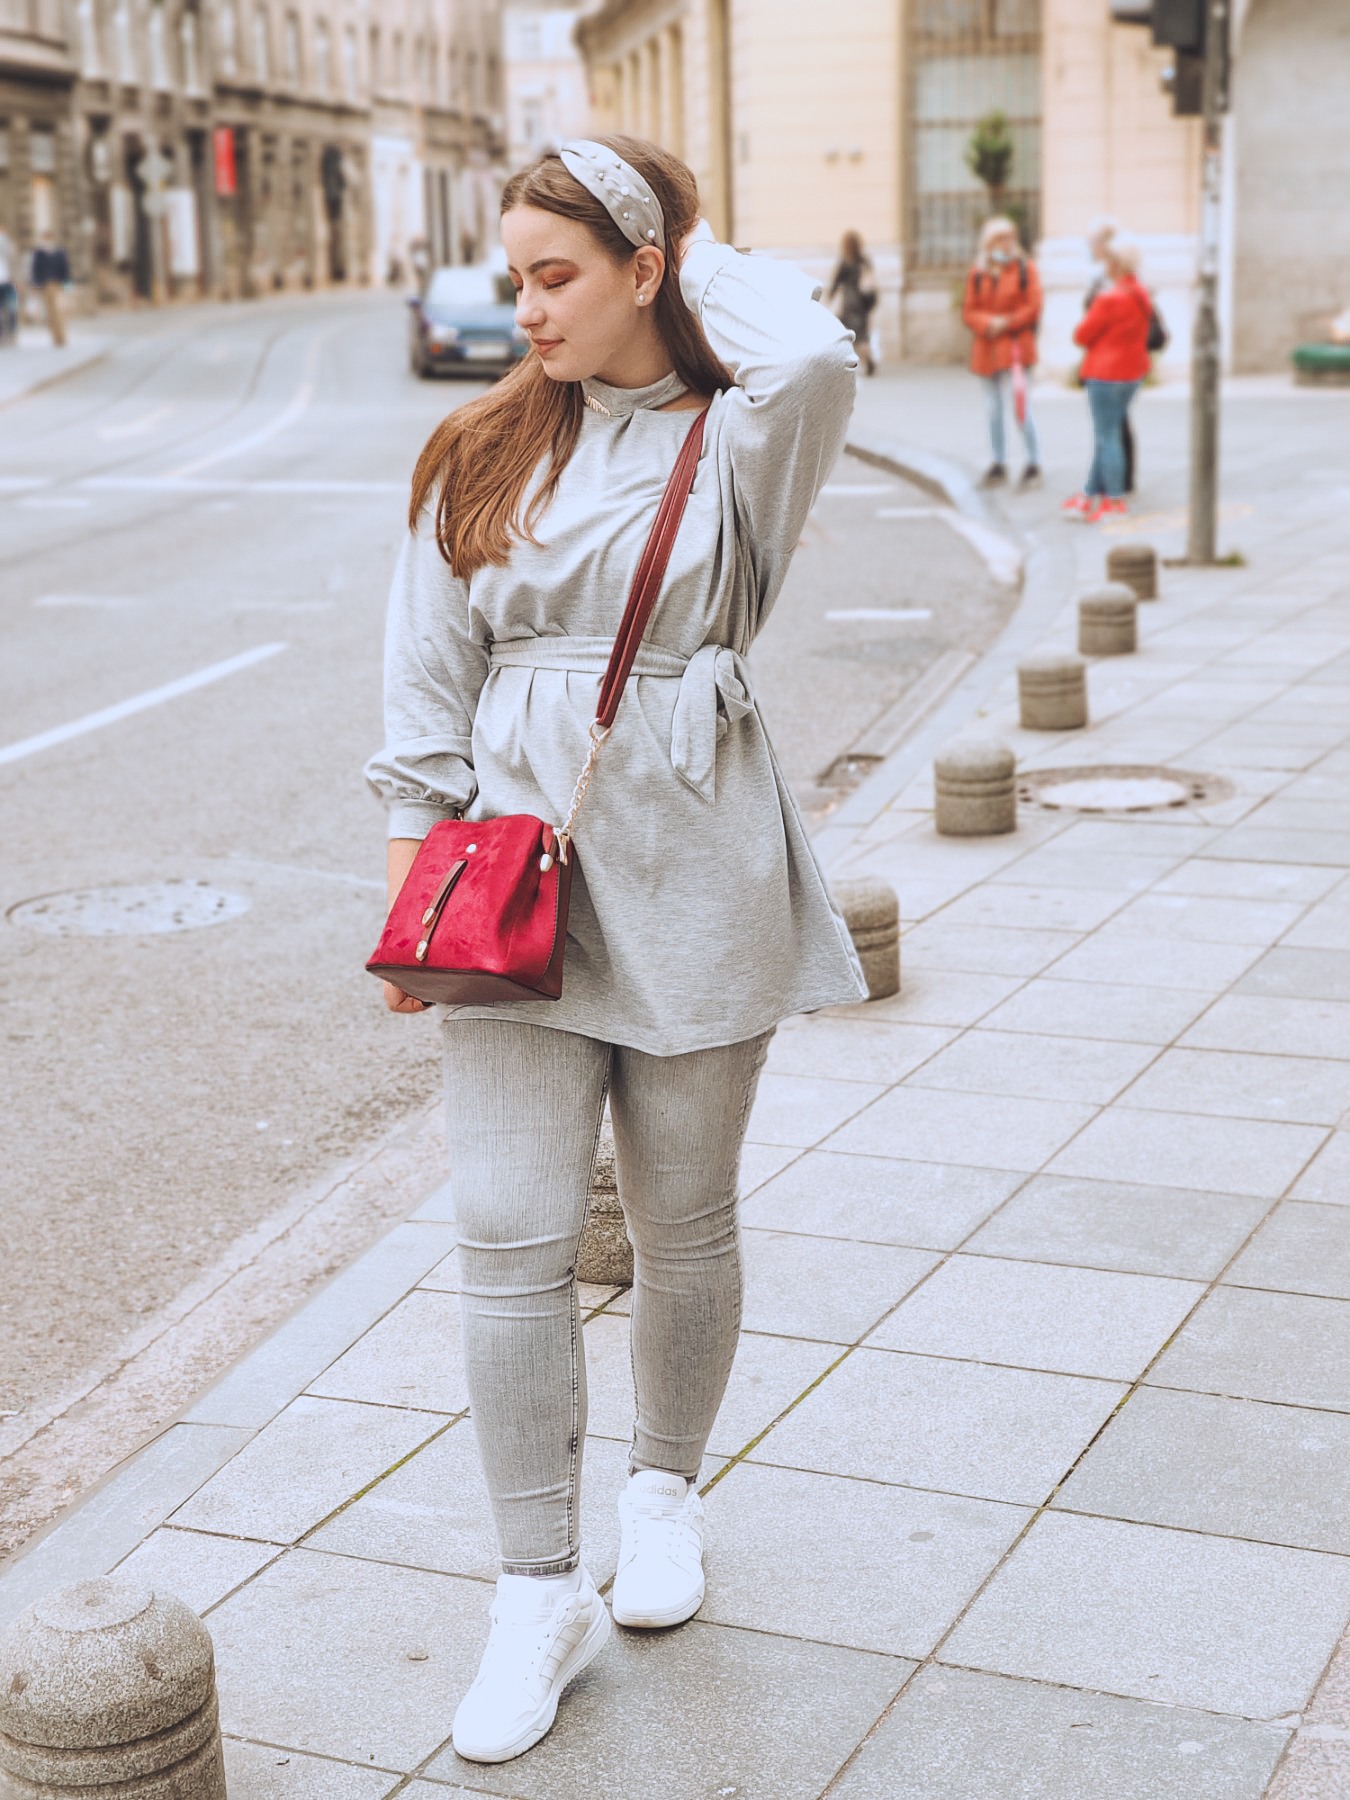 autumn outfit livinglikev fashion blogger autumn outfit ideas fall outfit